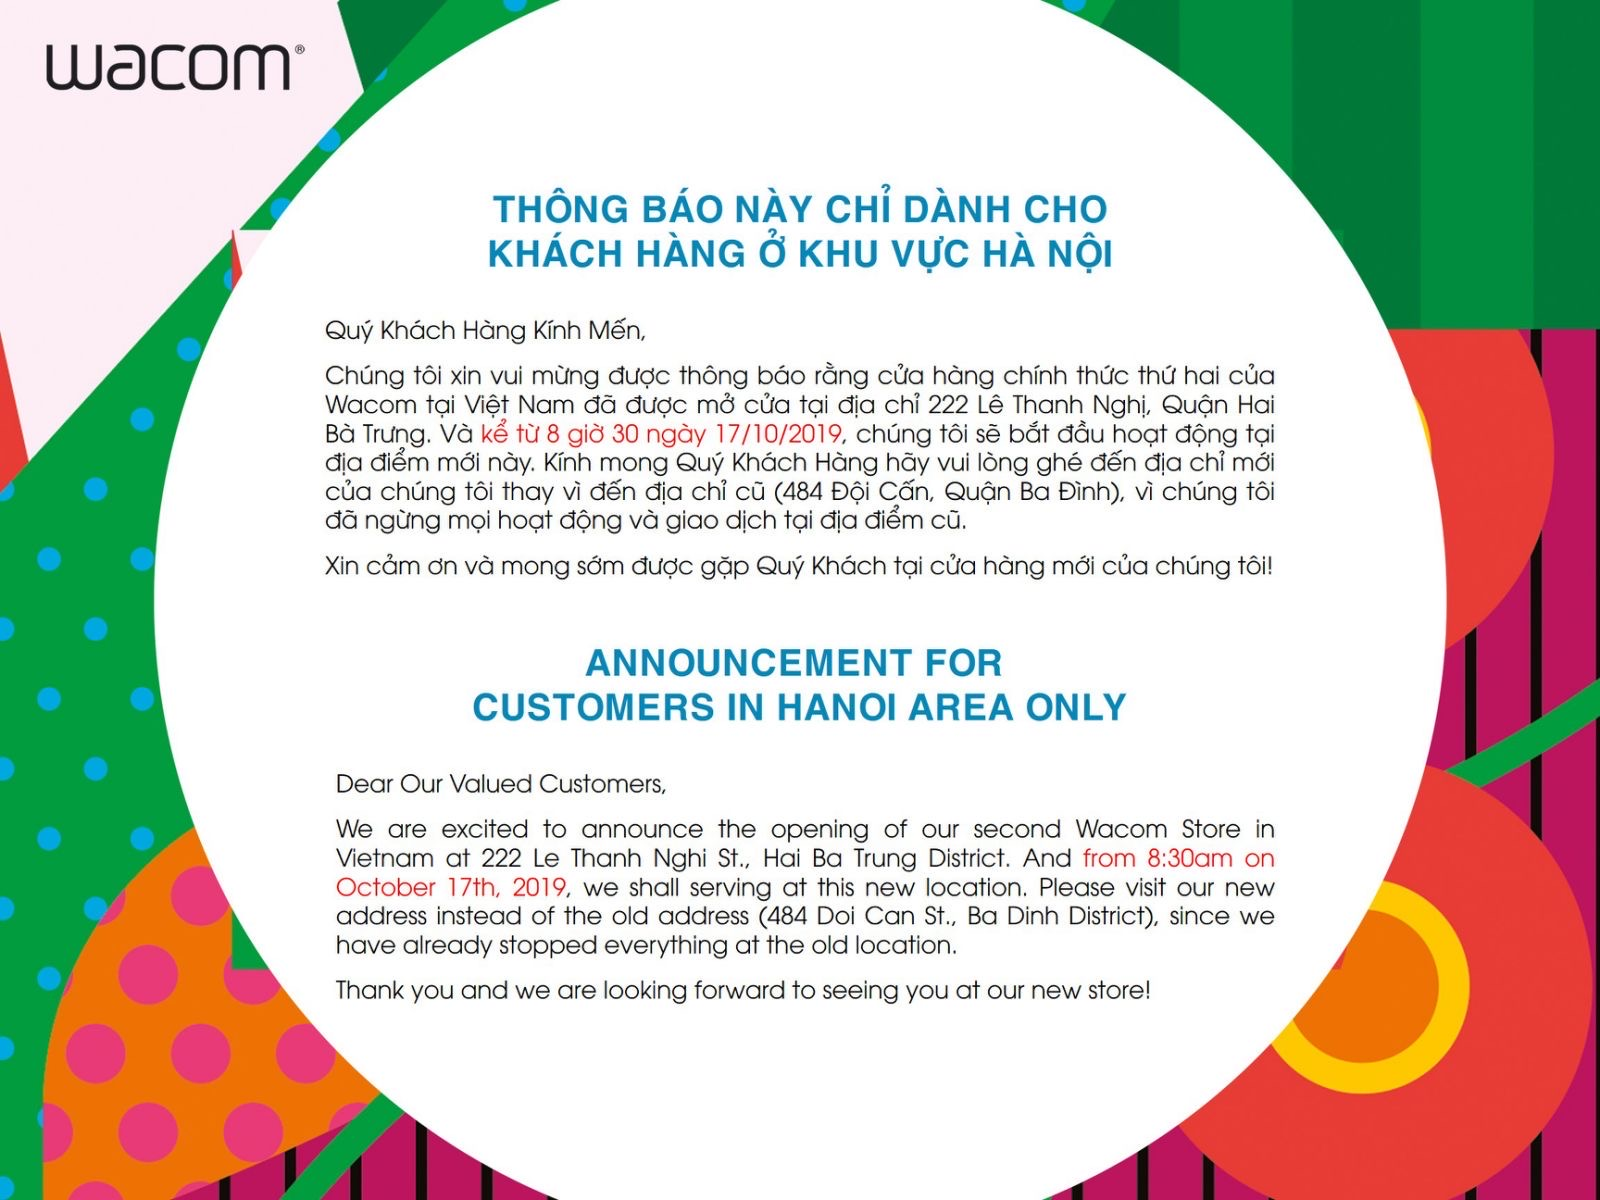 We've moved to a new location in Hanoi!!!